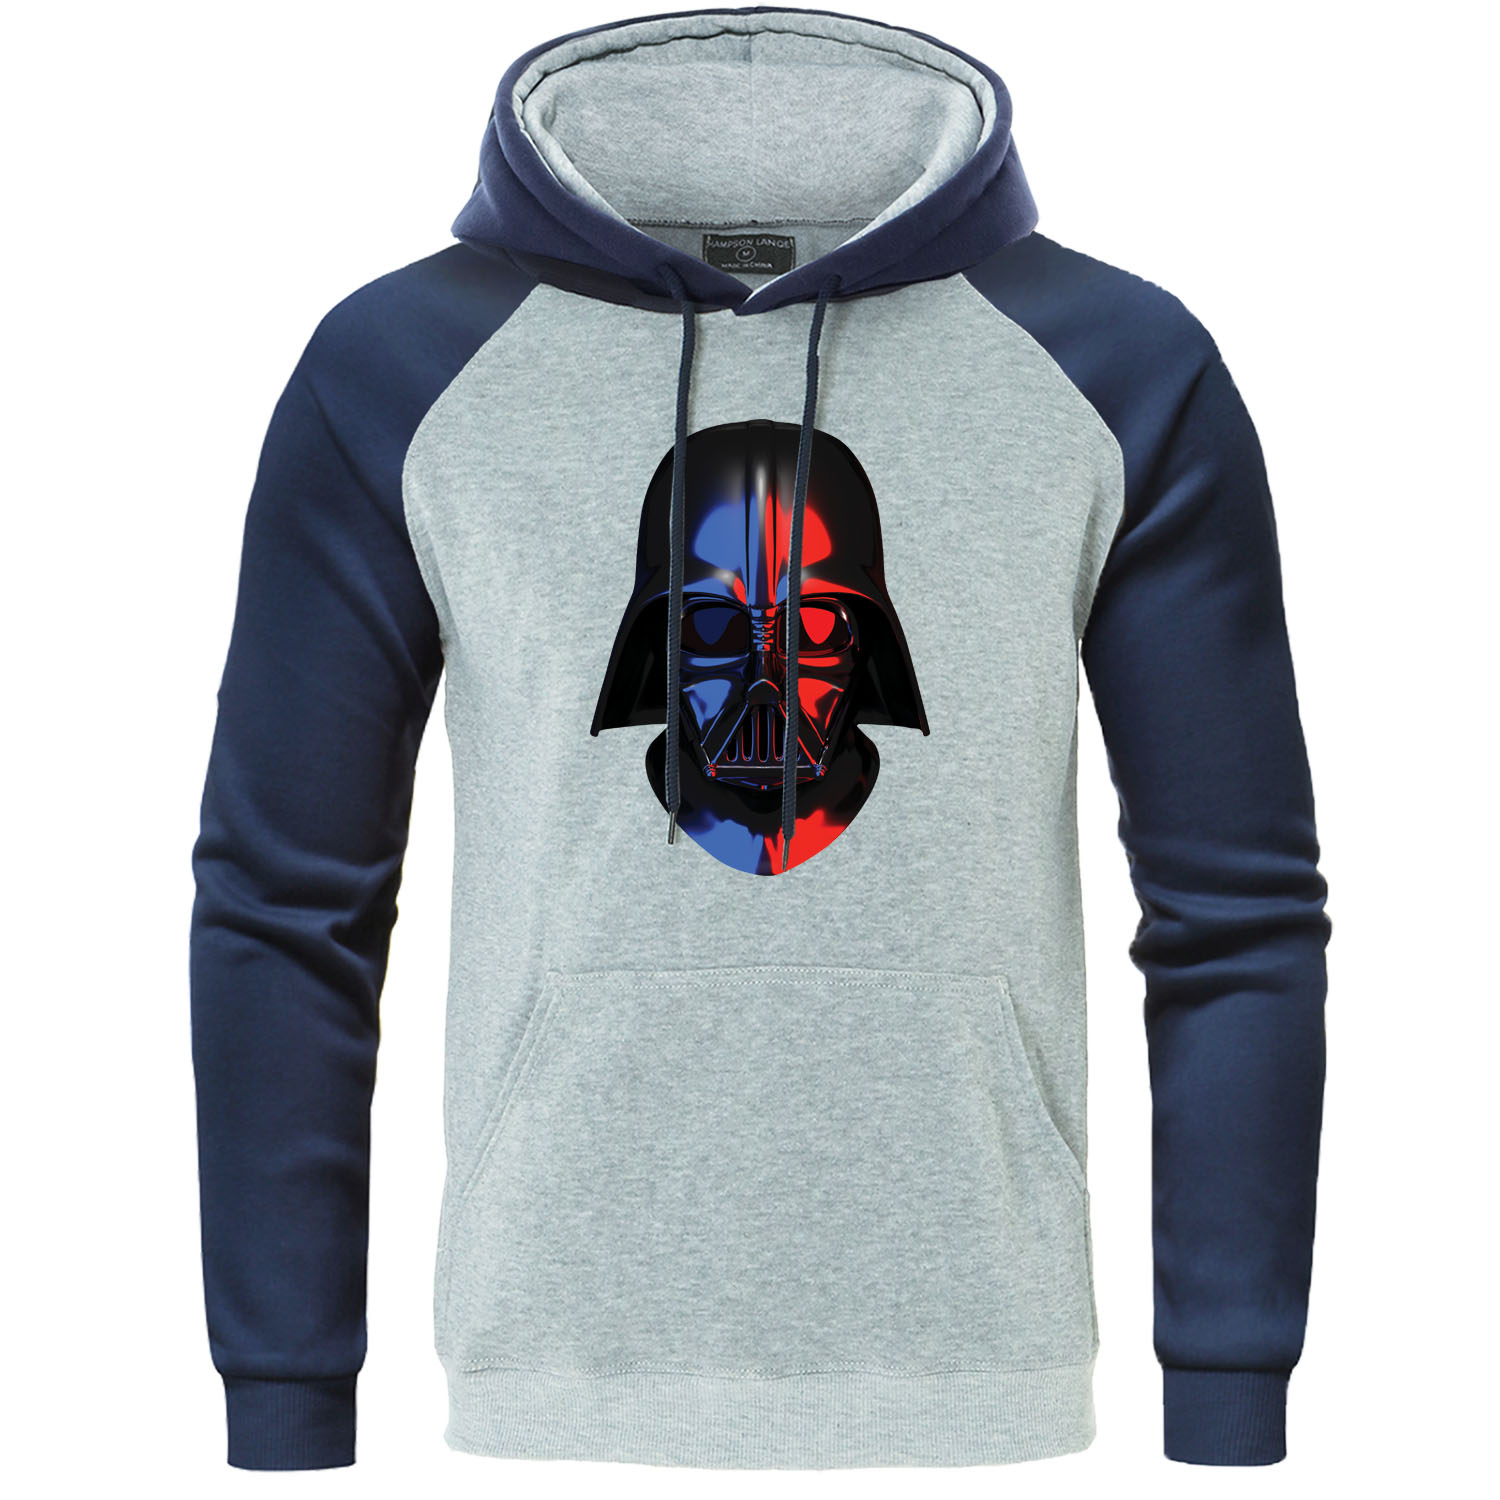 star wars Hoodie Autumn Winter men Tracksuit Funny novel Men's Sweatshirt Harajuku Raglan Pullover Darth Vader Streetwear Hoody image